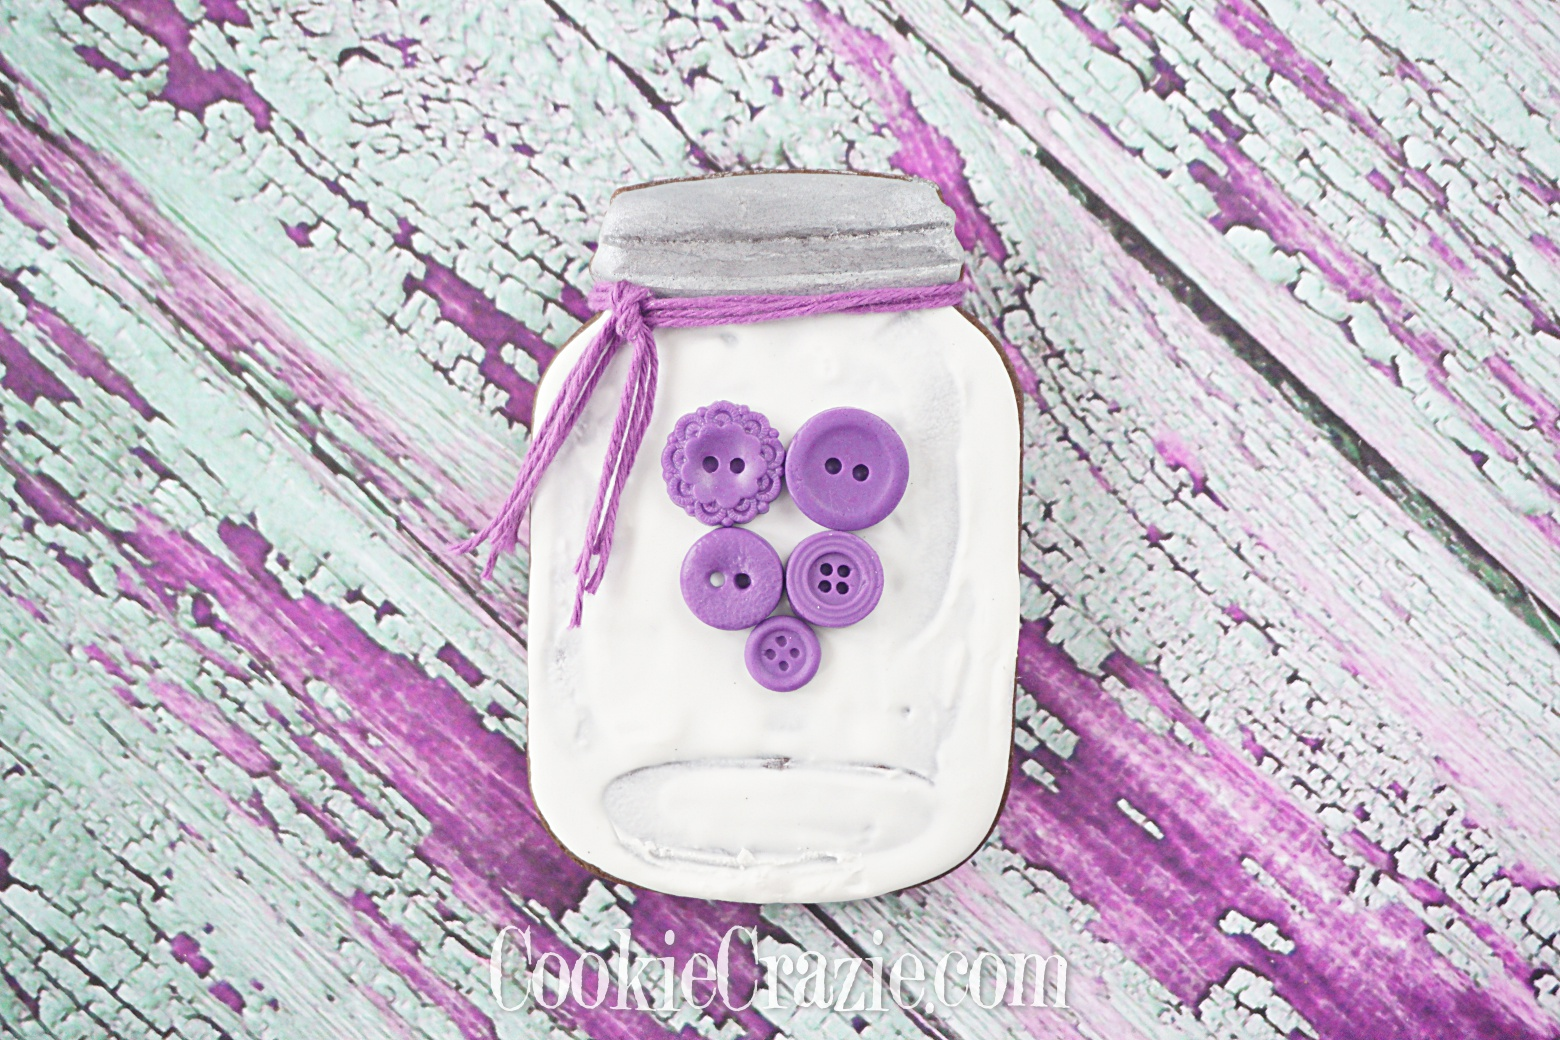 Valentine Mason Jar Decorated Sugar Cookie YouTube video  HERE